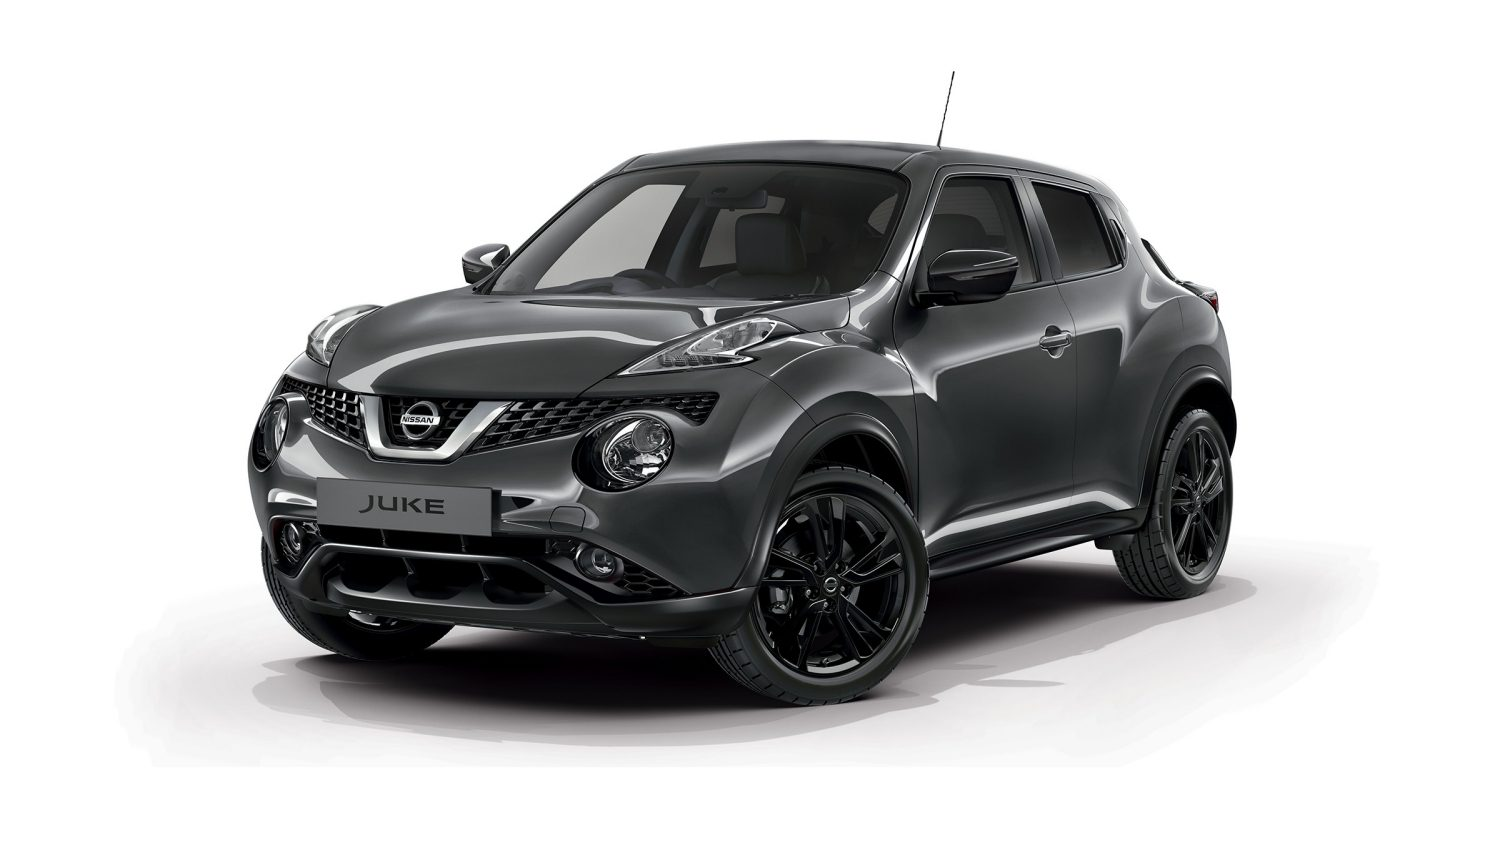 small suv special version nissan juke nissan. Black Bedroom Furniture Sets. Home Design Ideas